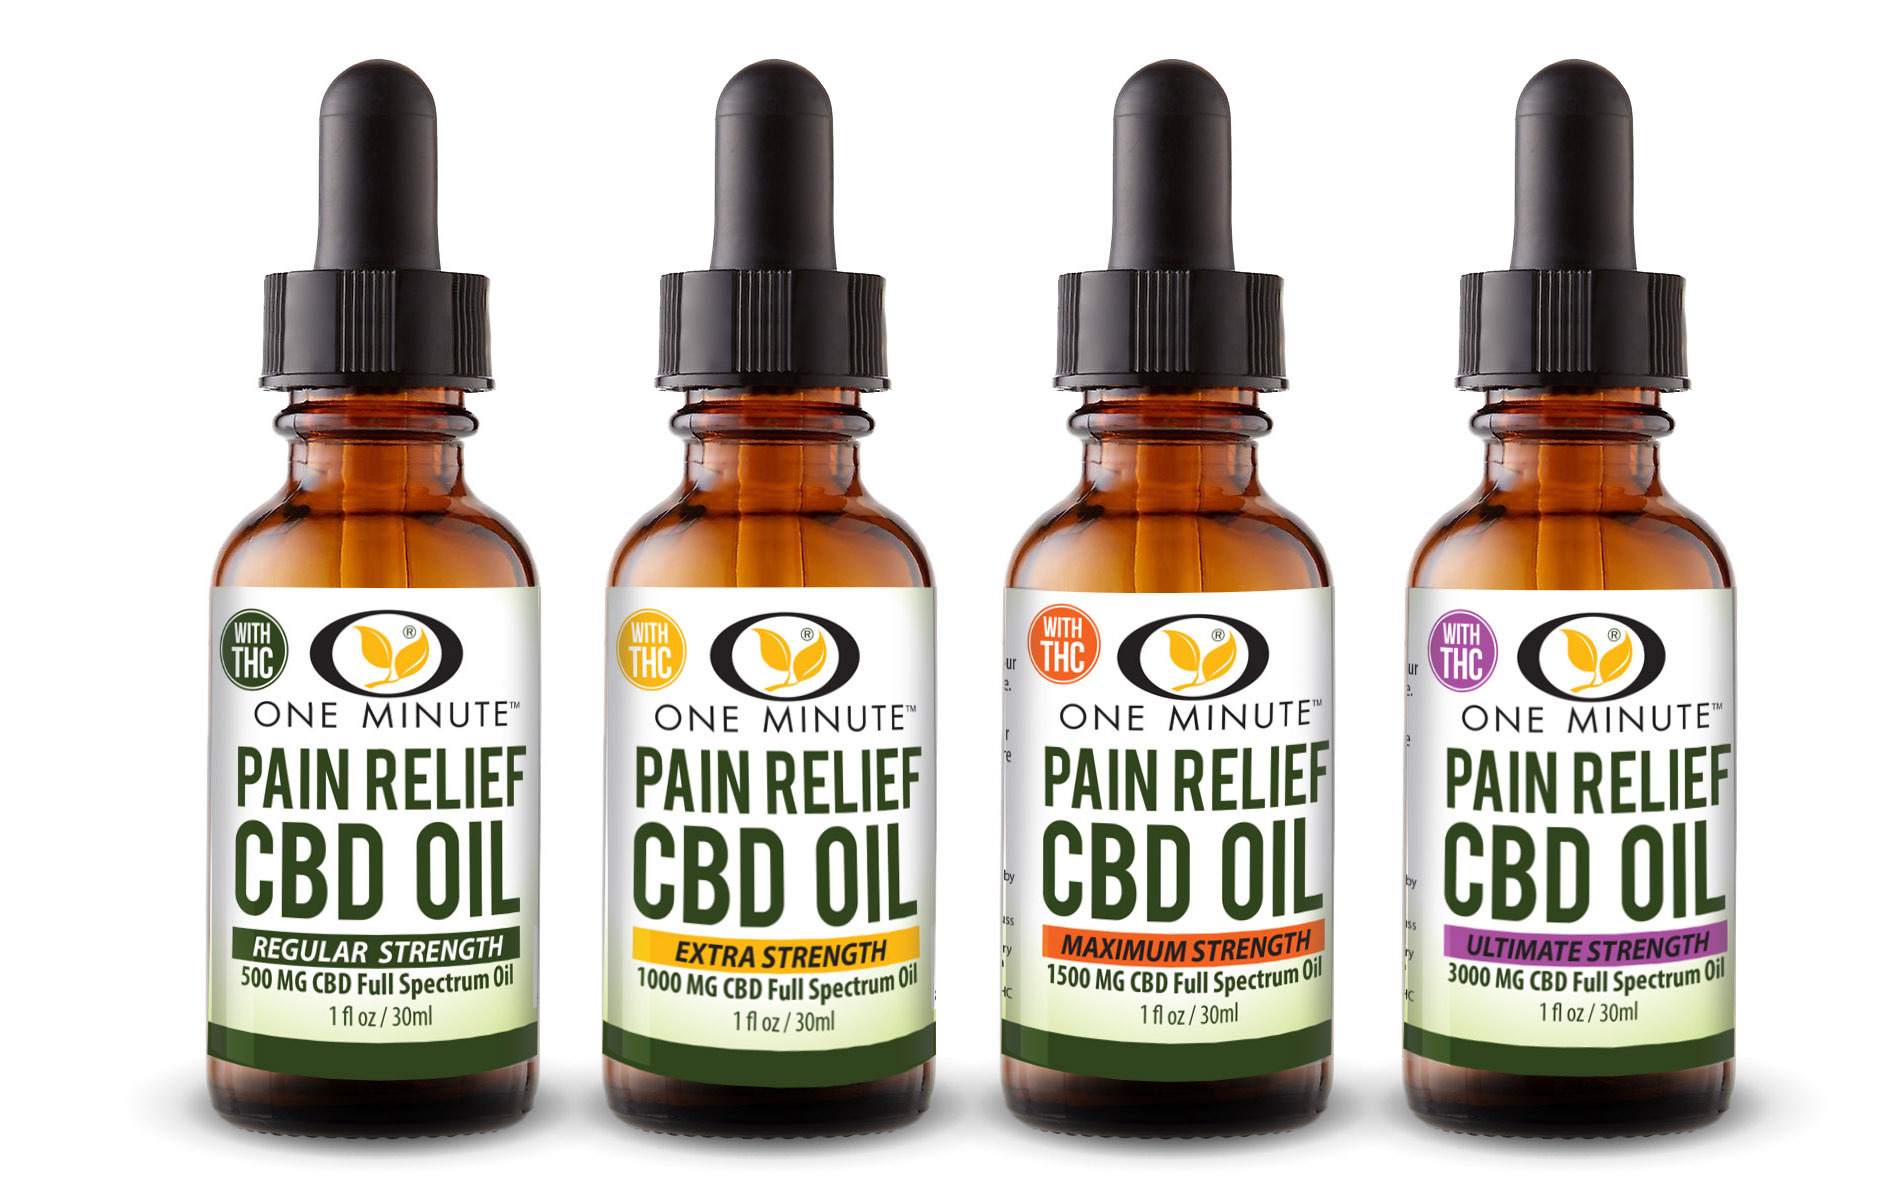 Best CBD Oil for Pain: Top 5 Brands ...discovermagazine.com